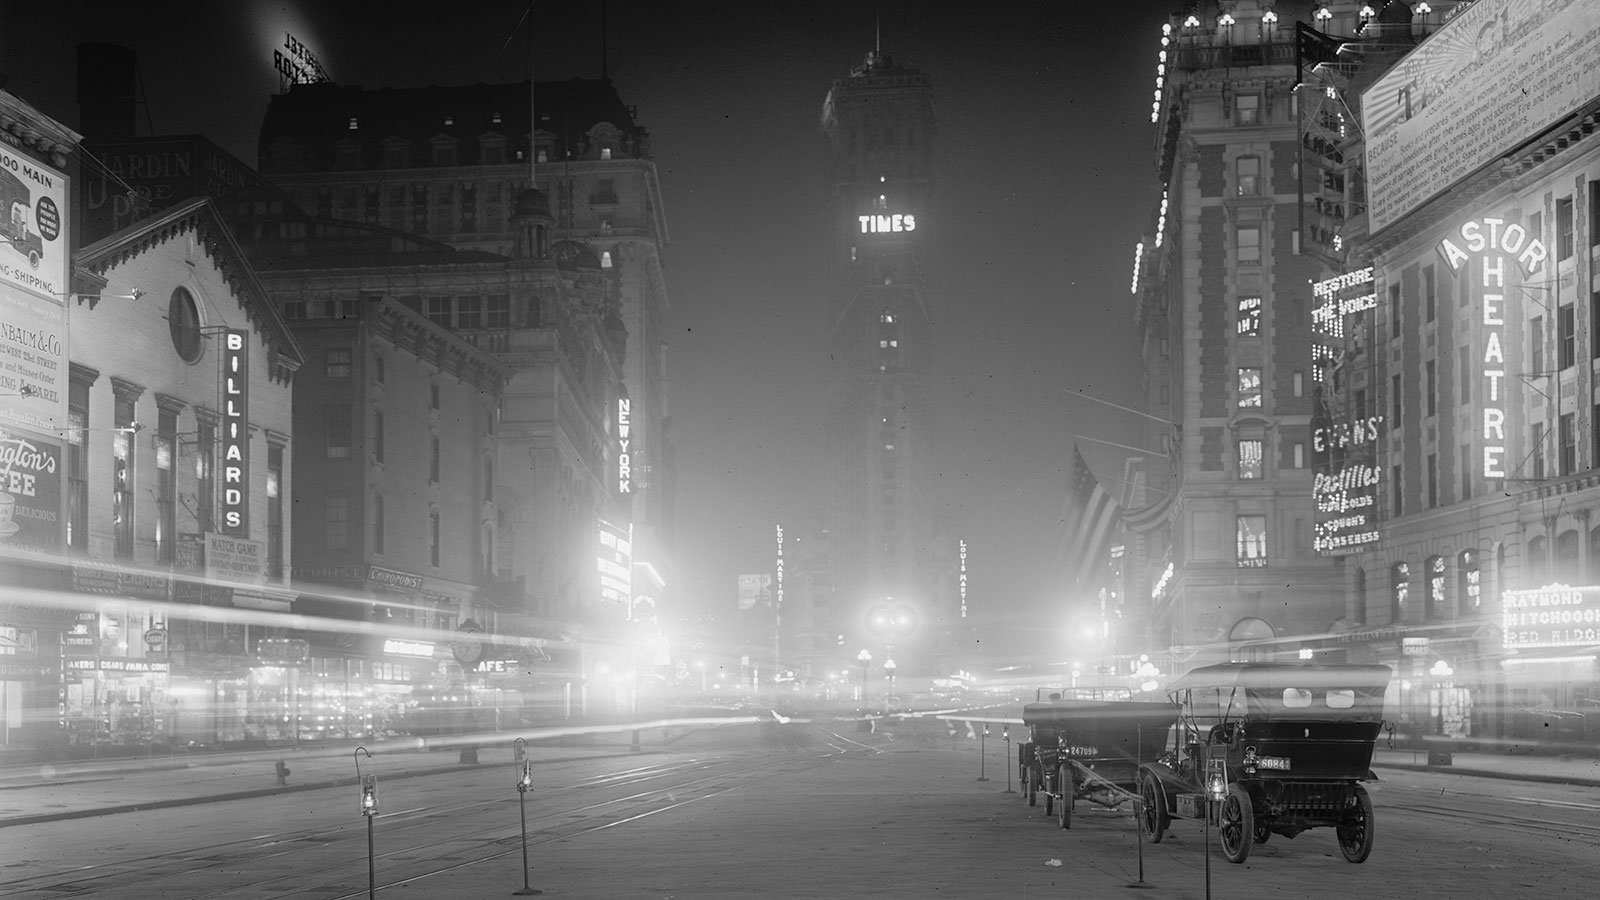 Times Square at night, between 1900 and 1915